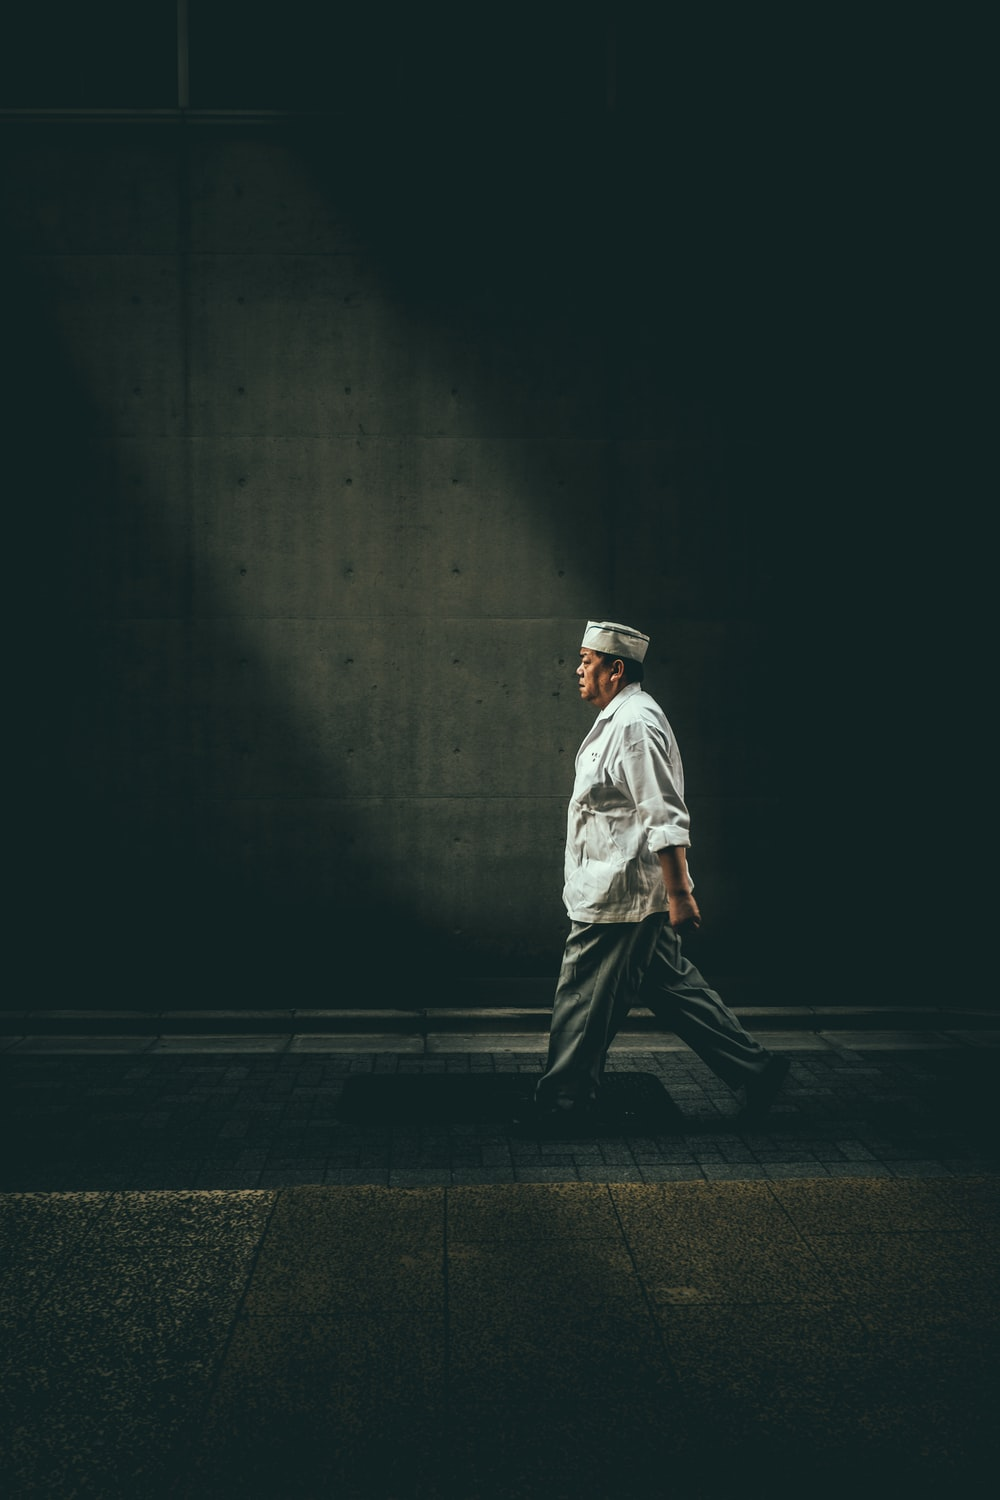 man in white shirt walking on street